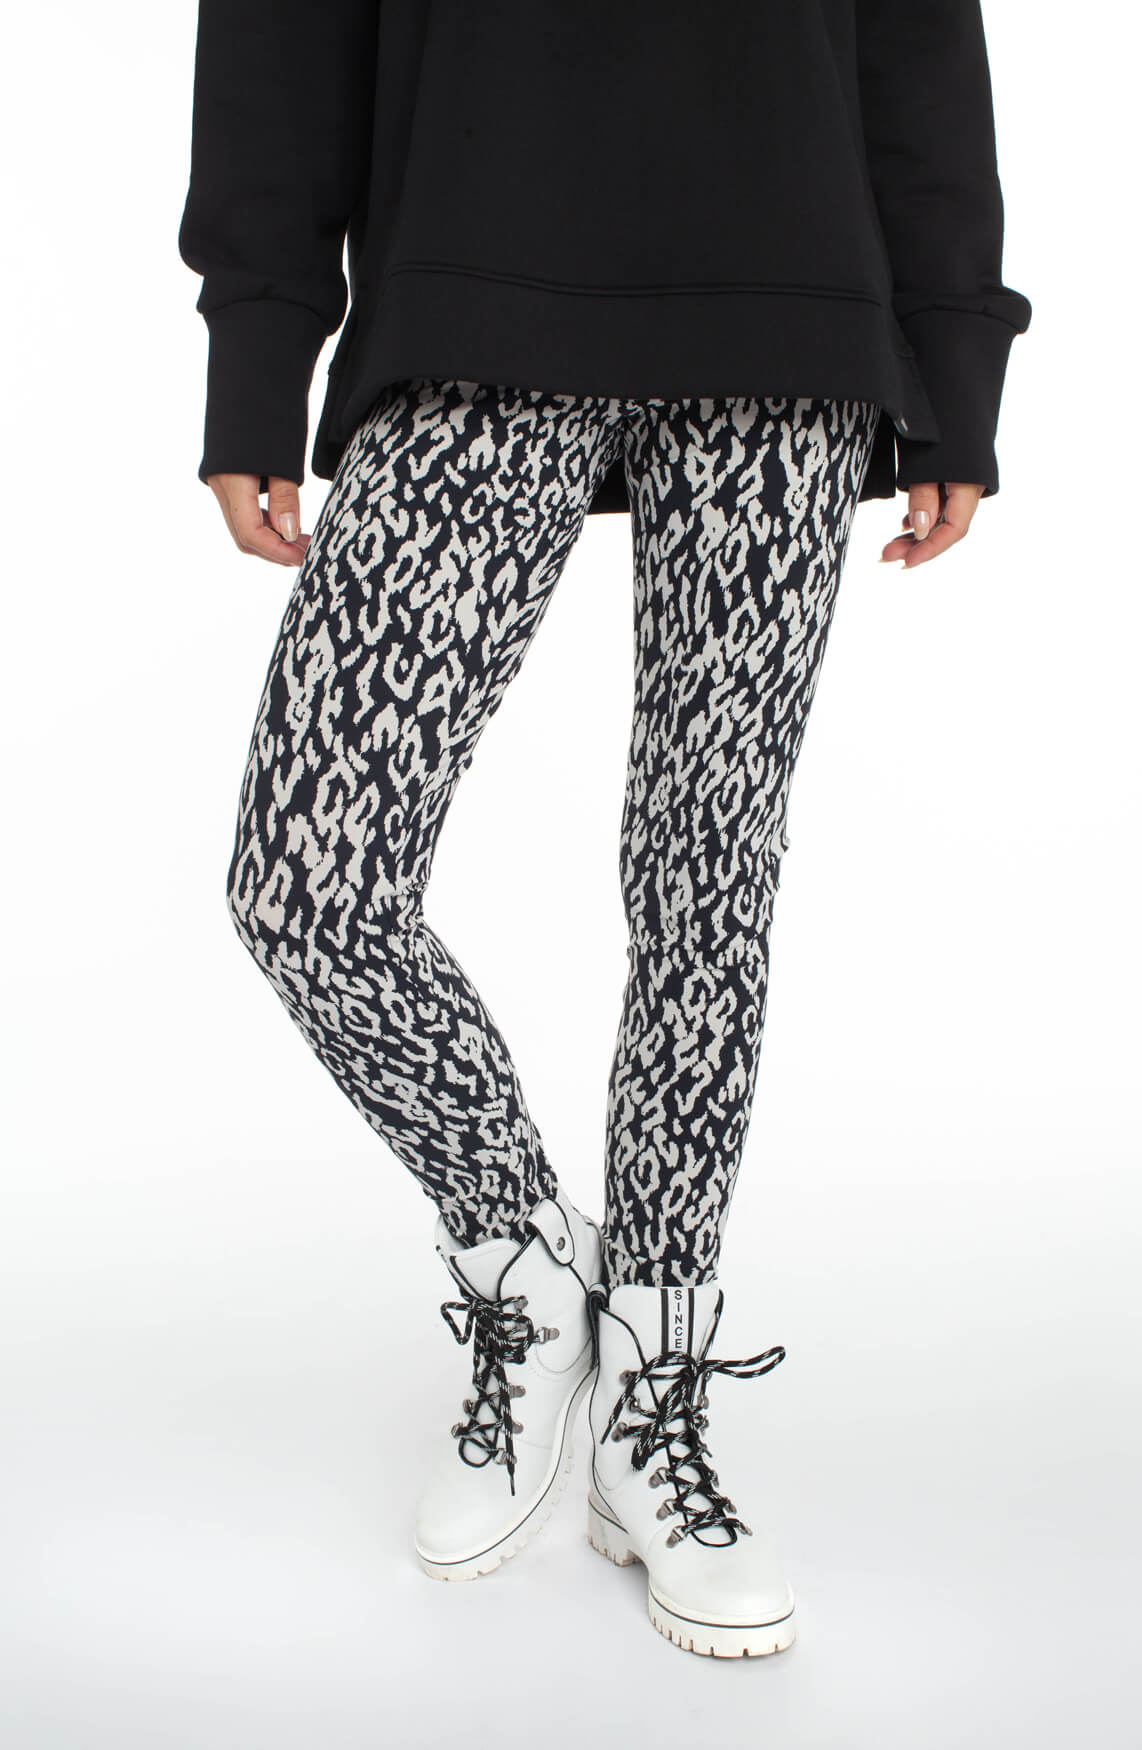 Penn & Ink Dames Legging met animalprint zwart